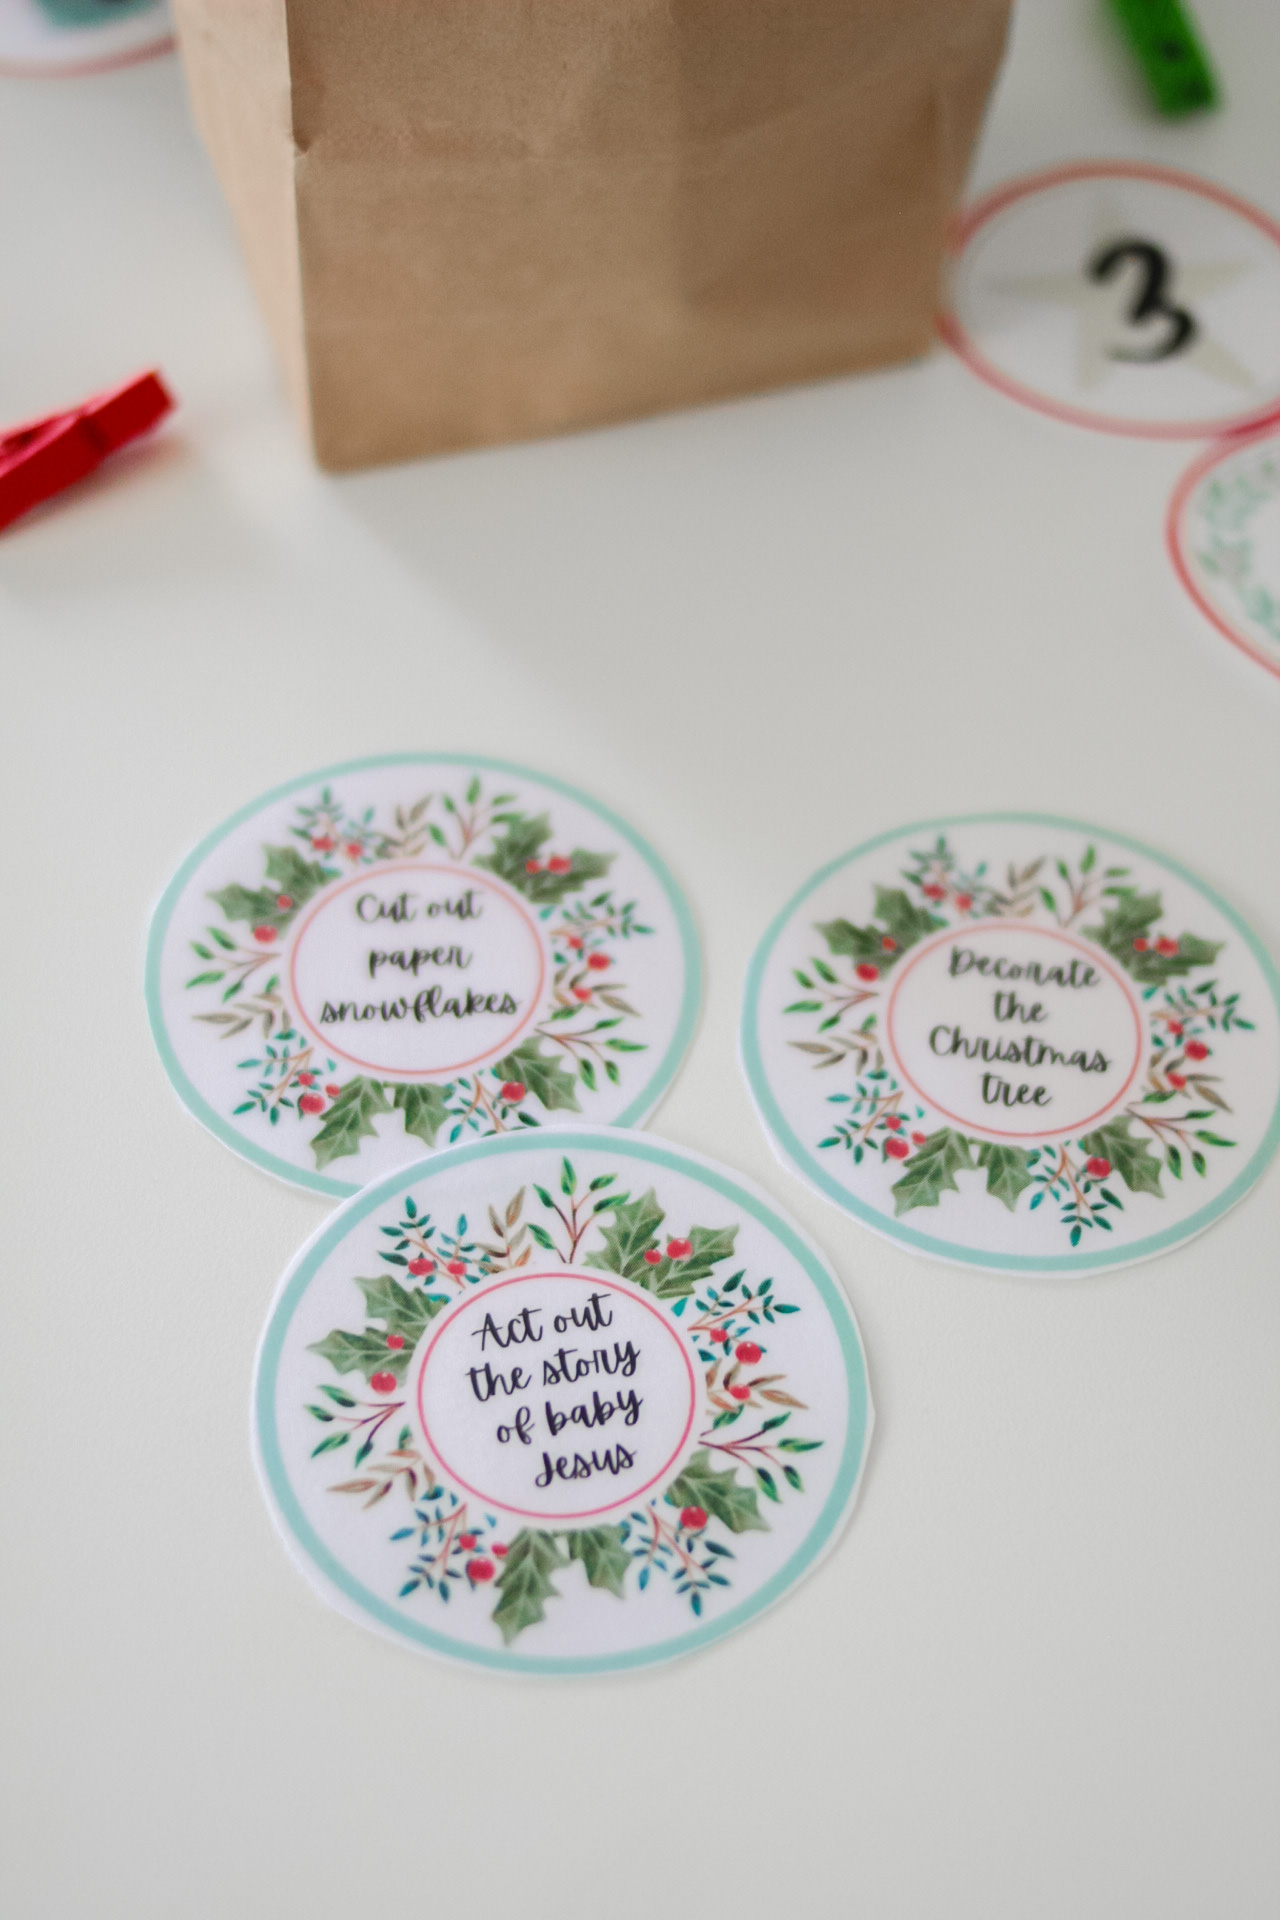 Advent calendar ideas - printable activity cards